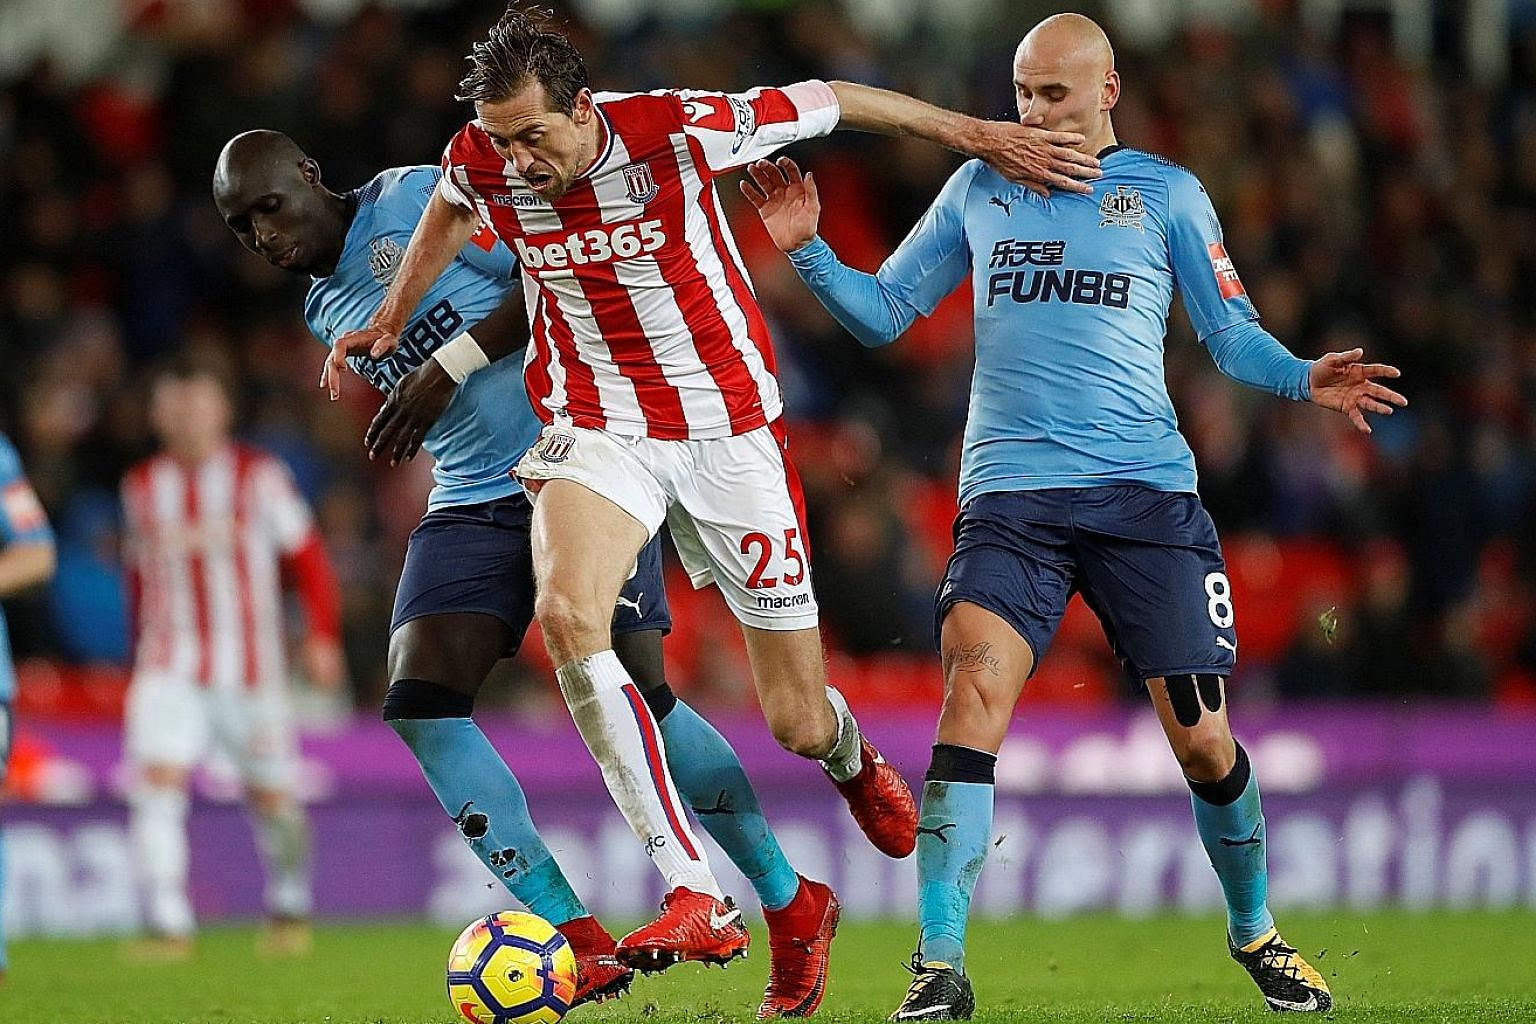 Newcastle's Mohamed Diame (far left) and Jonjo Shelvey trying to rob Stoke's Peter Crouch of the ball. Mark Hughes' decision to field a weakened team at Chelsea and bring back his senior players for Newcastle backfired as they lost both games.